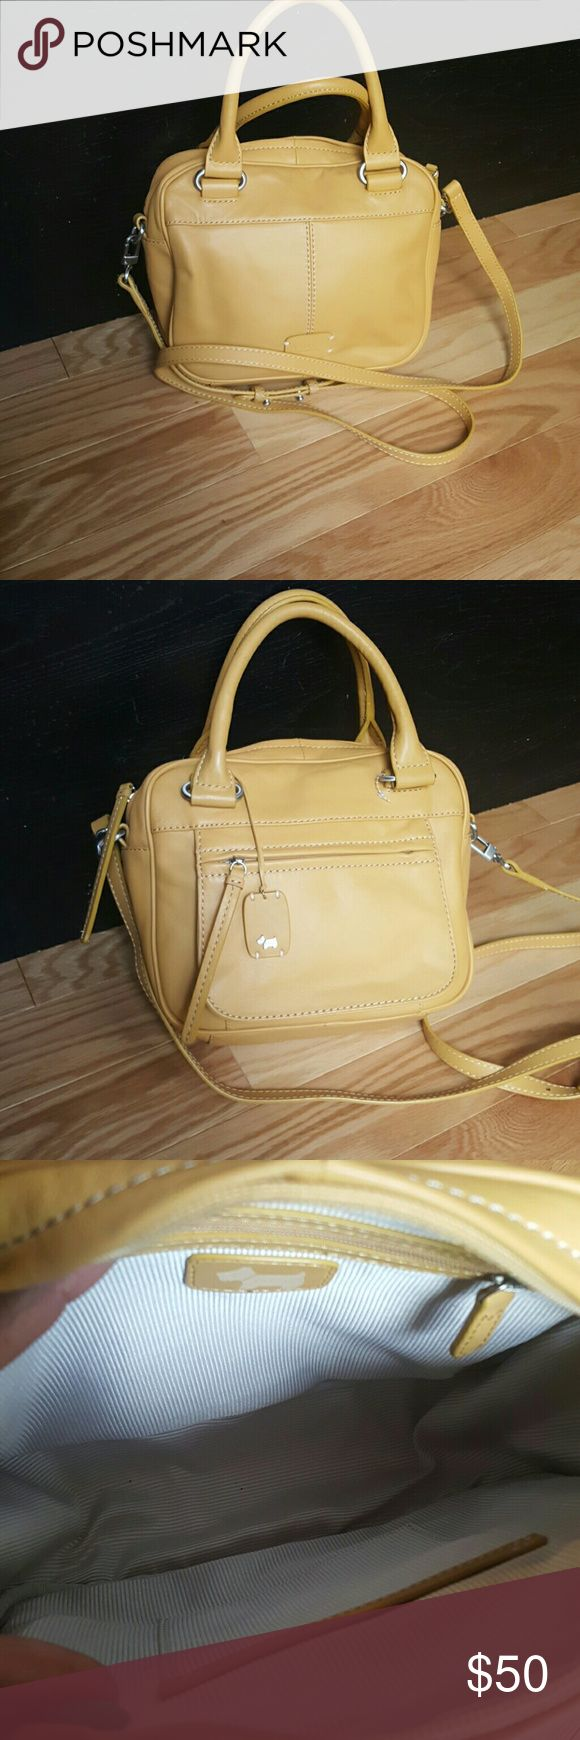 Radley ladies leather gloves - Leather Radley Purse Mustard Yellow Radley Purse Comes With Long Cross Body Strap In Excellent